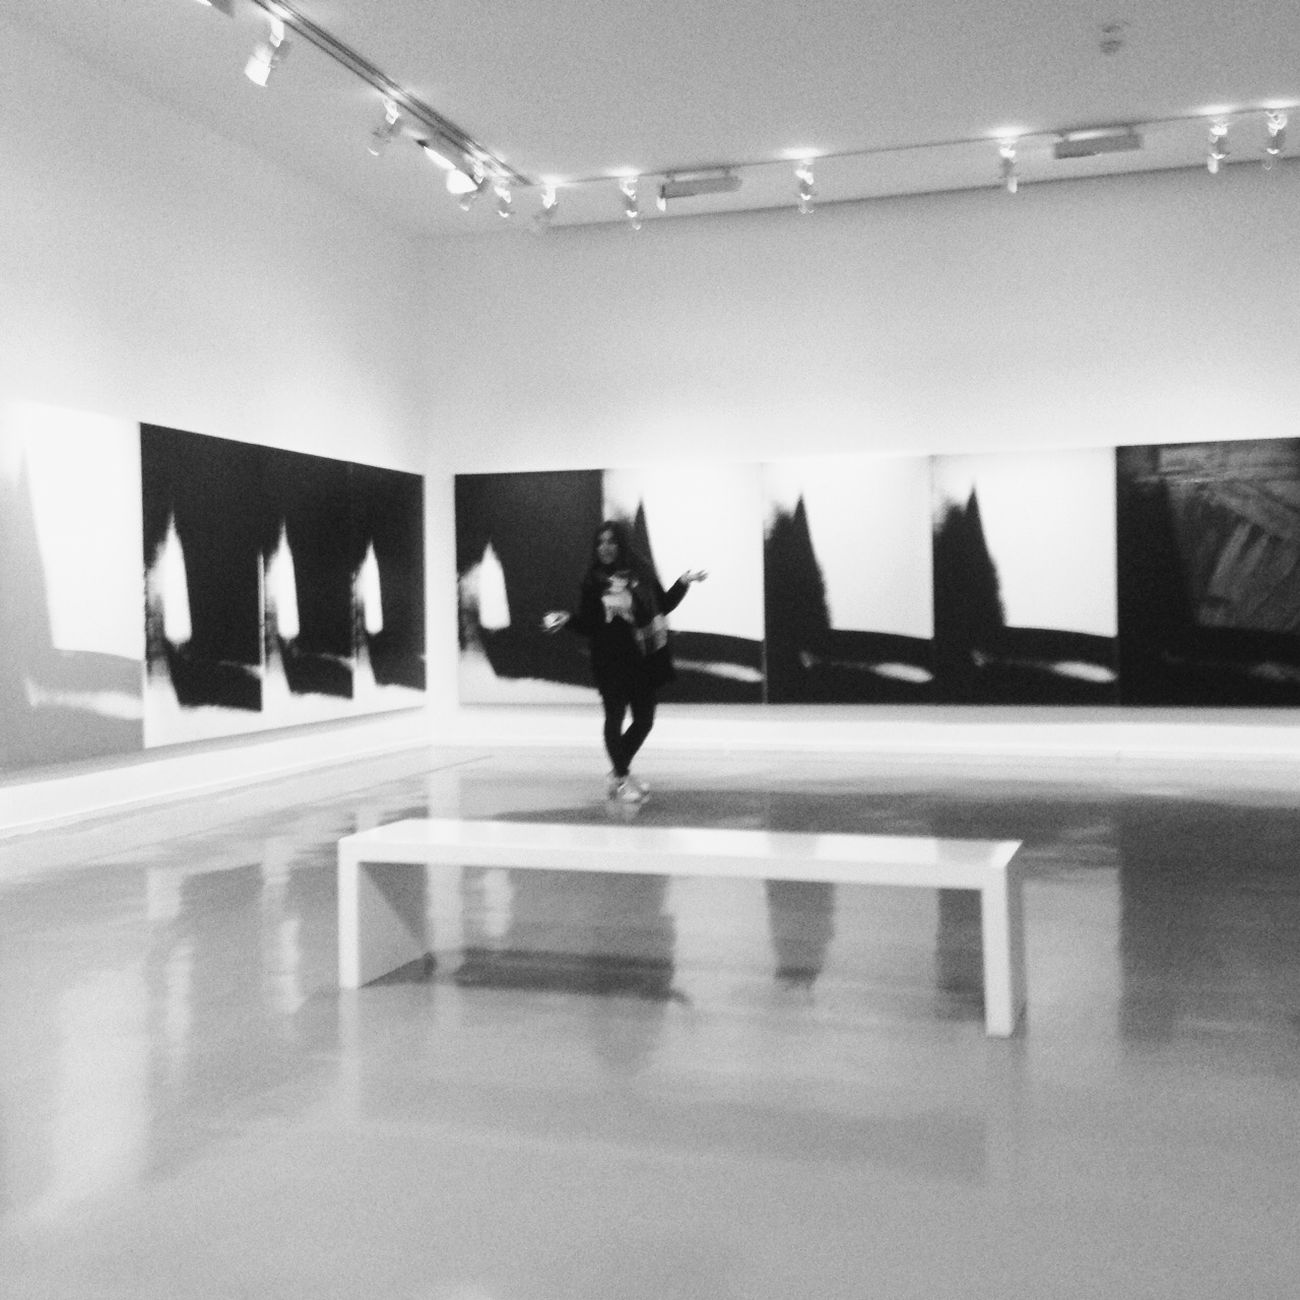 Black 0n White Art Museum